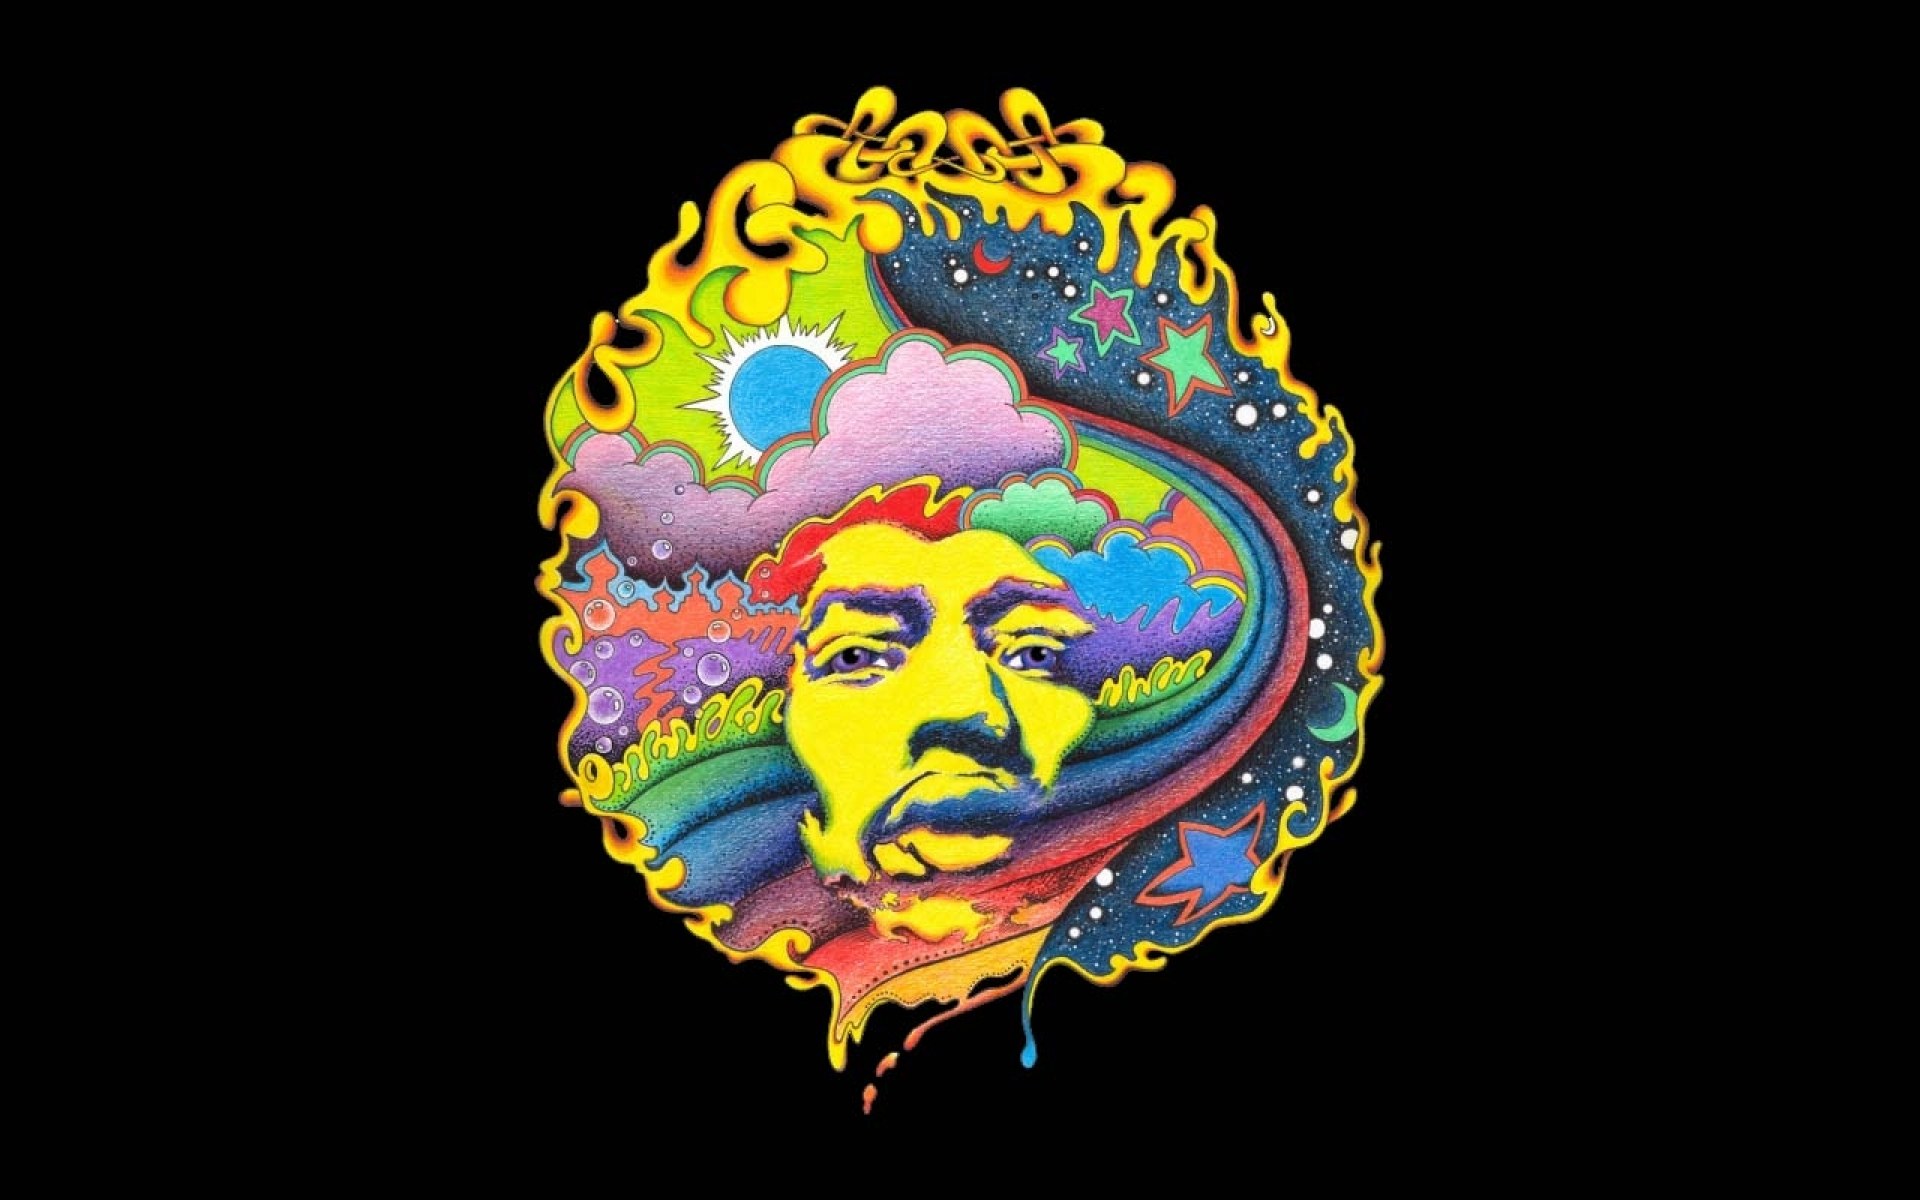 Resolution Of Hd Iphone Wallpaper: Jimi Hendrix Wallpapers High Resolution And Quality Download